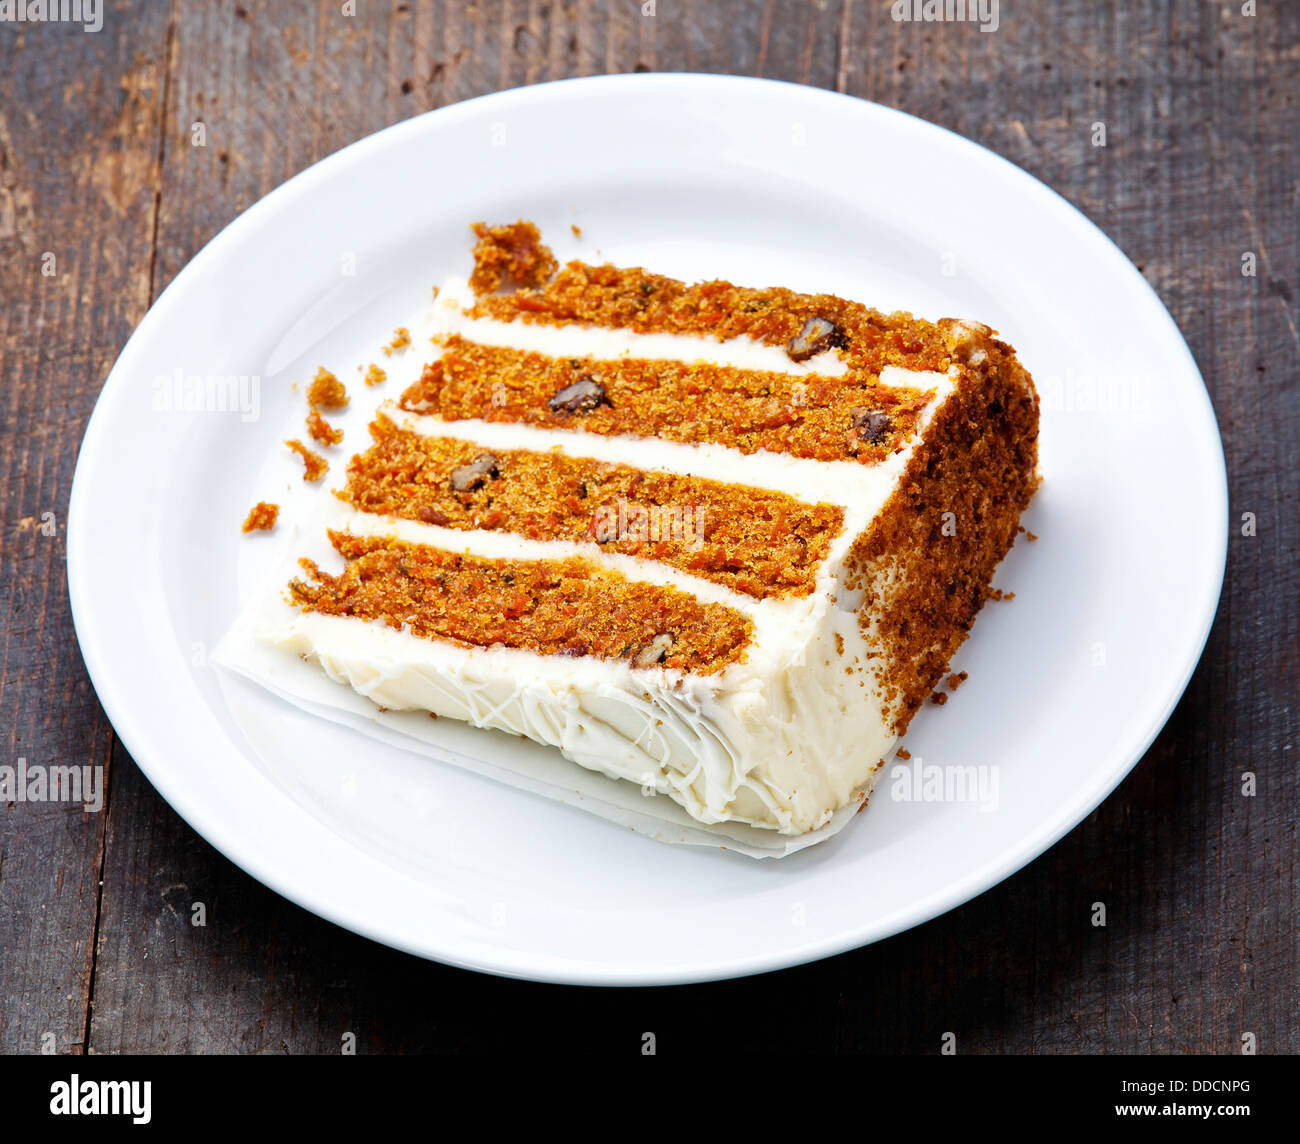 Slice of carrot cake on wooden background - Stock Image